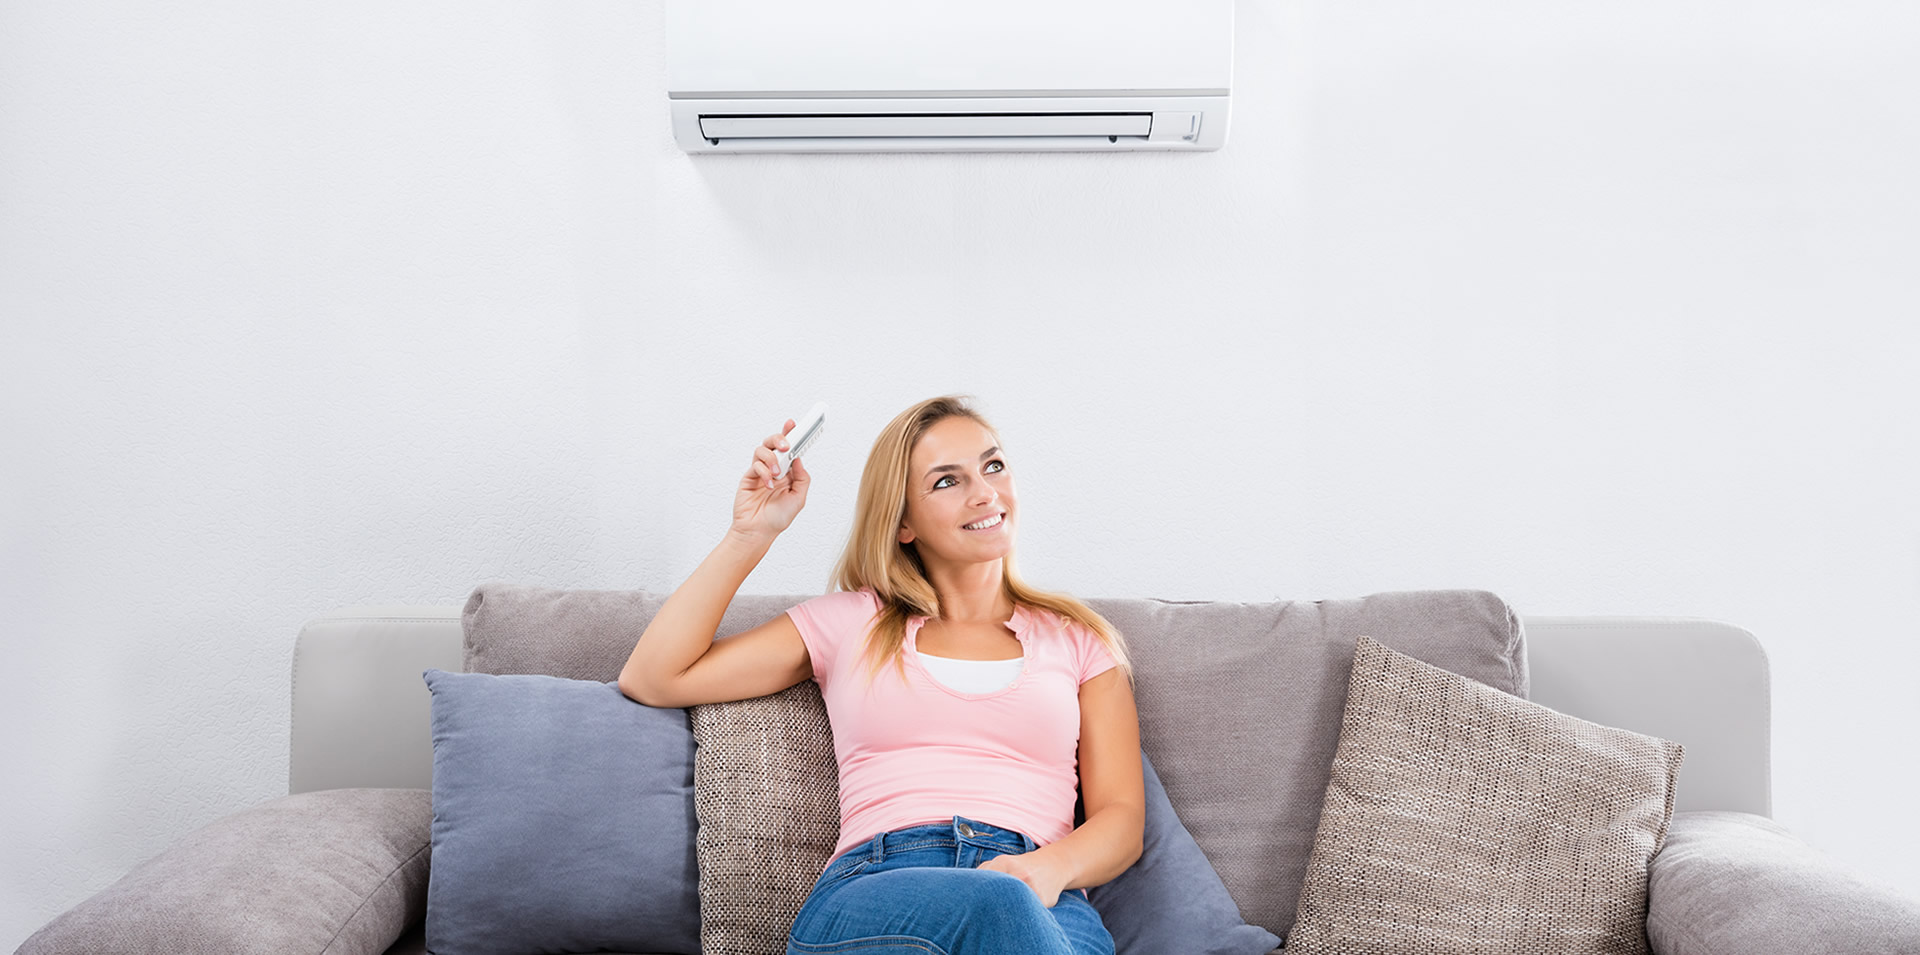 total refrigeration and air conditioning specialists